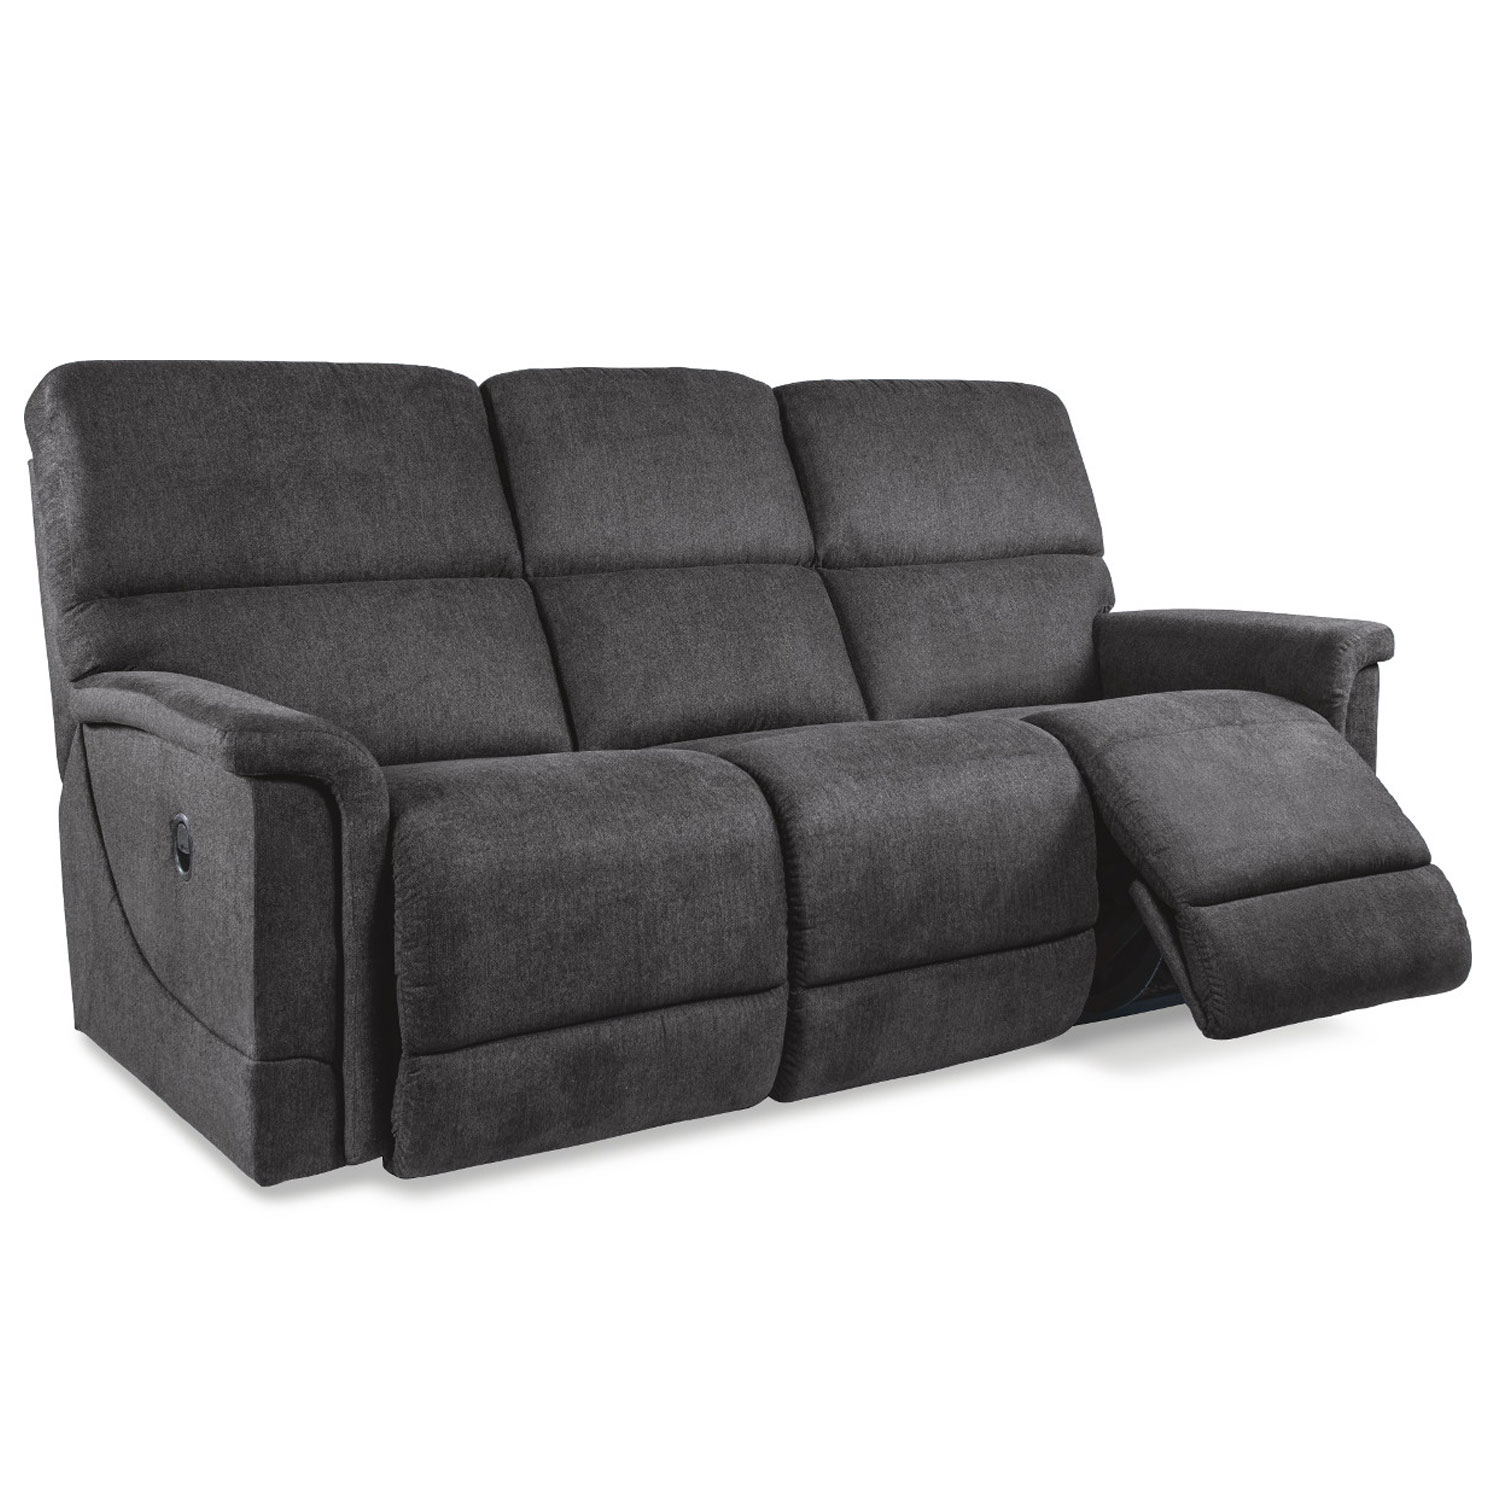 Leather Sofa La Z Boy Lazboy 480 737 Oscar Reclining Sofa